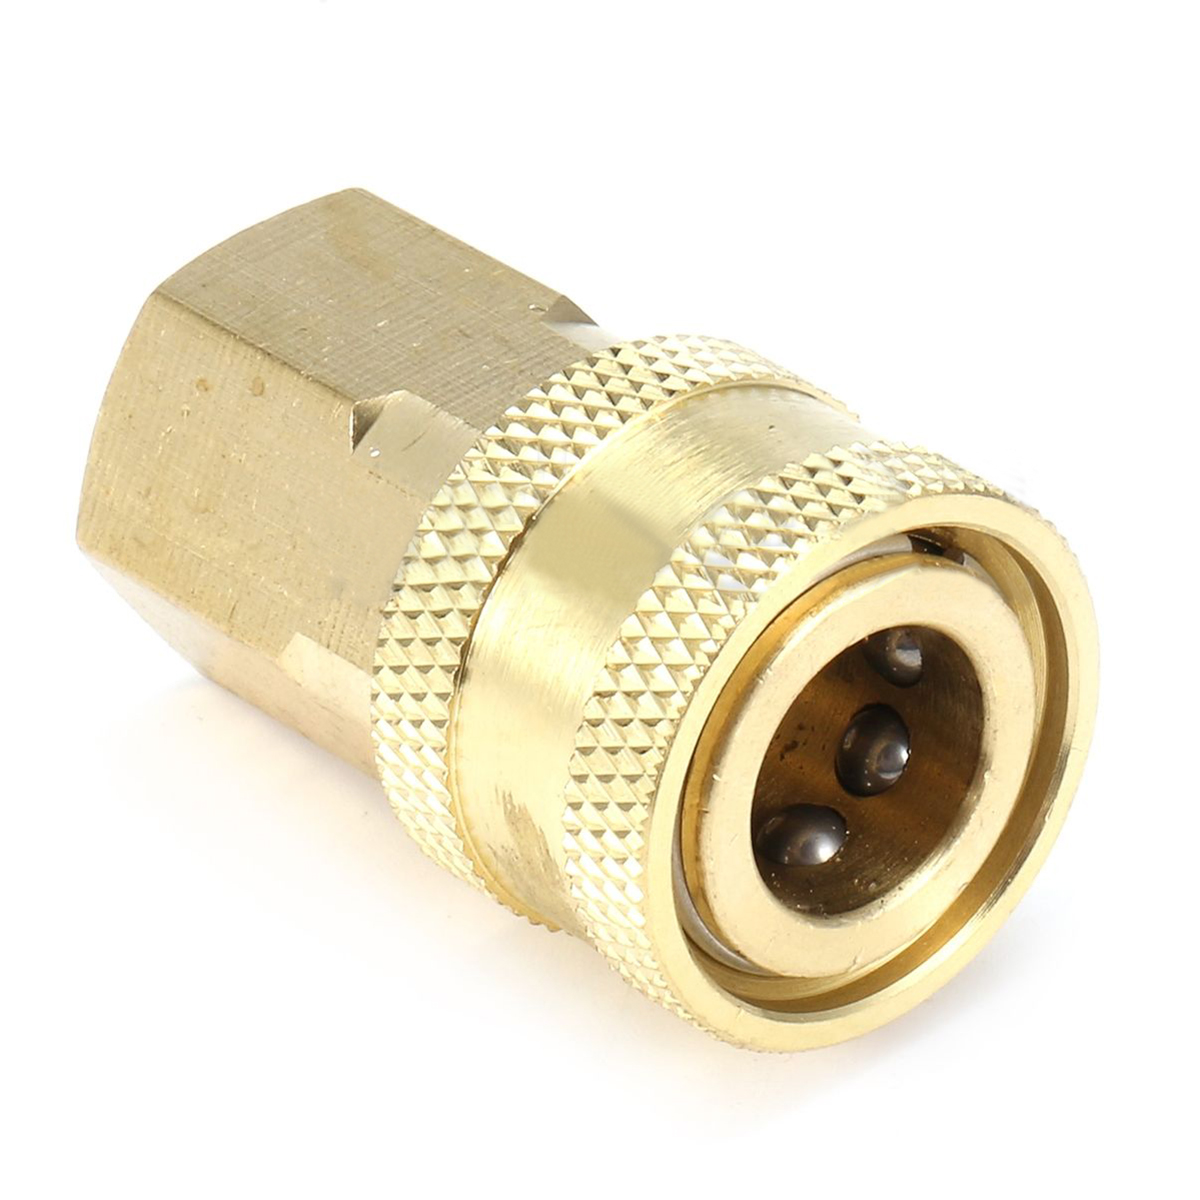 1pc Mayitr Durable 1/4 Female Quick Connect Couplers NPT Brass Pneumatic Pipe Thread Adapter for Pressure Washer 40mm*15mm